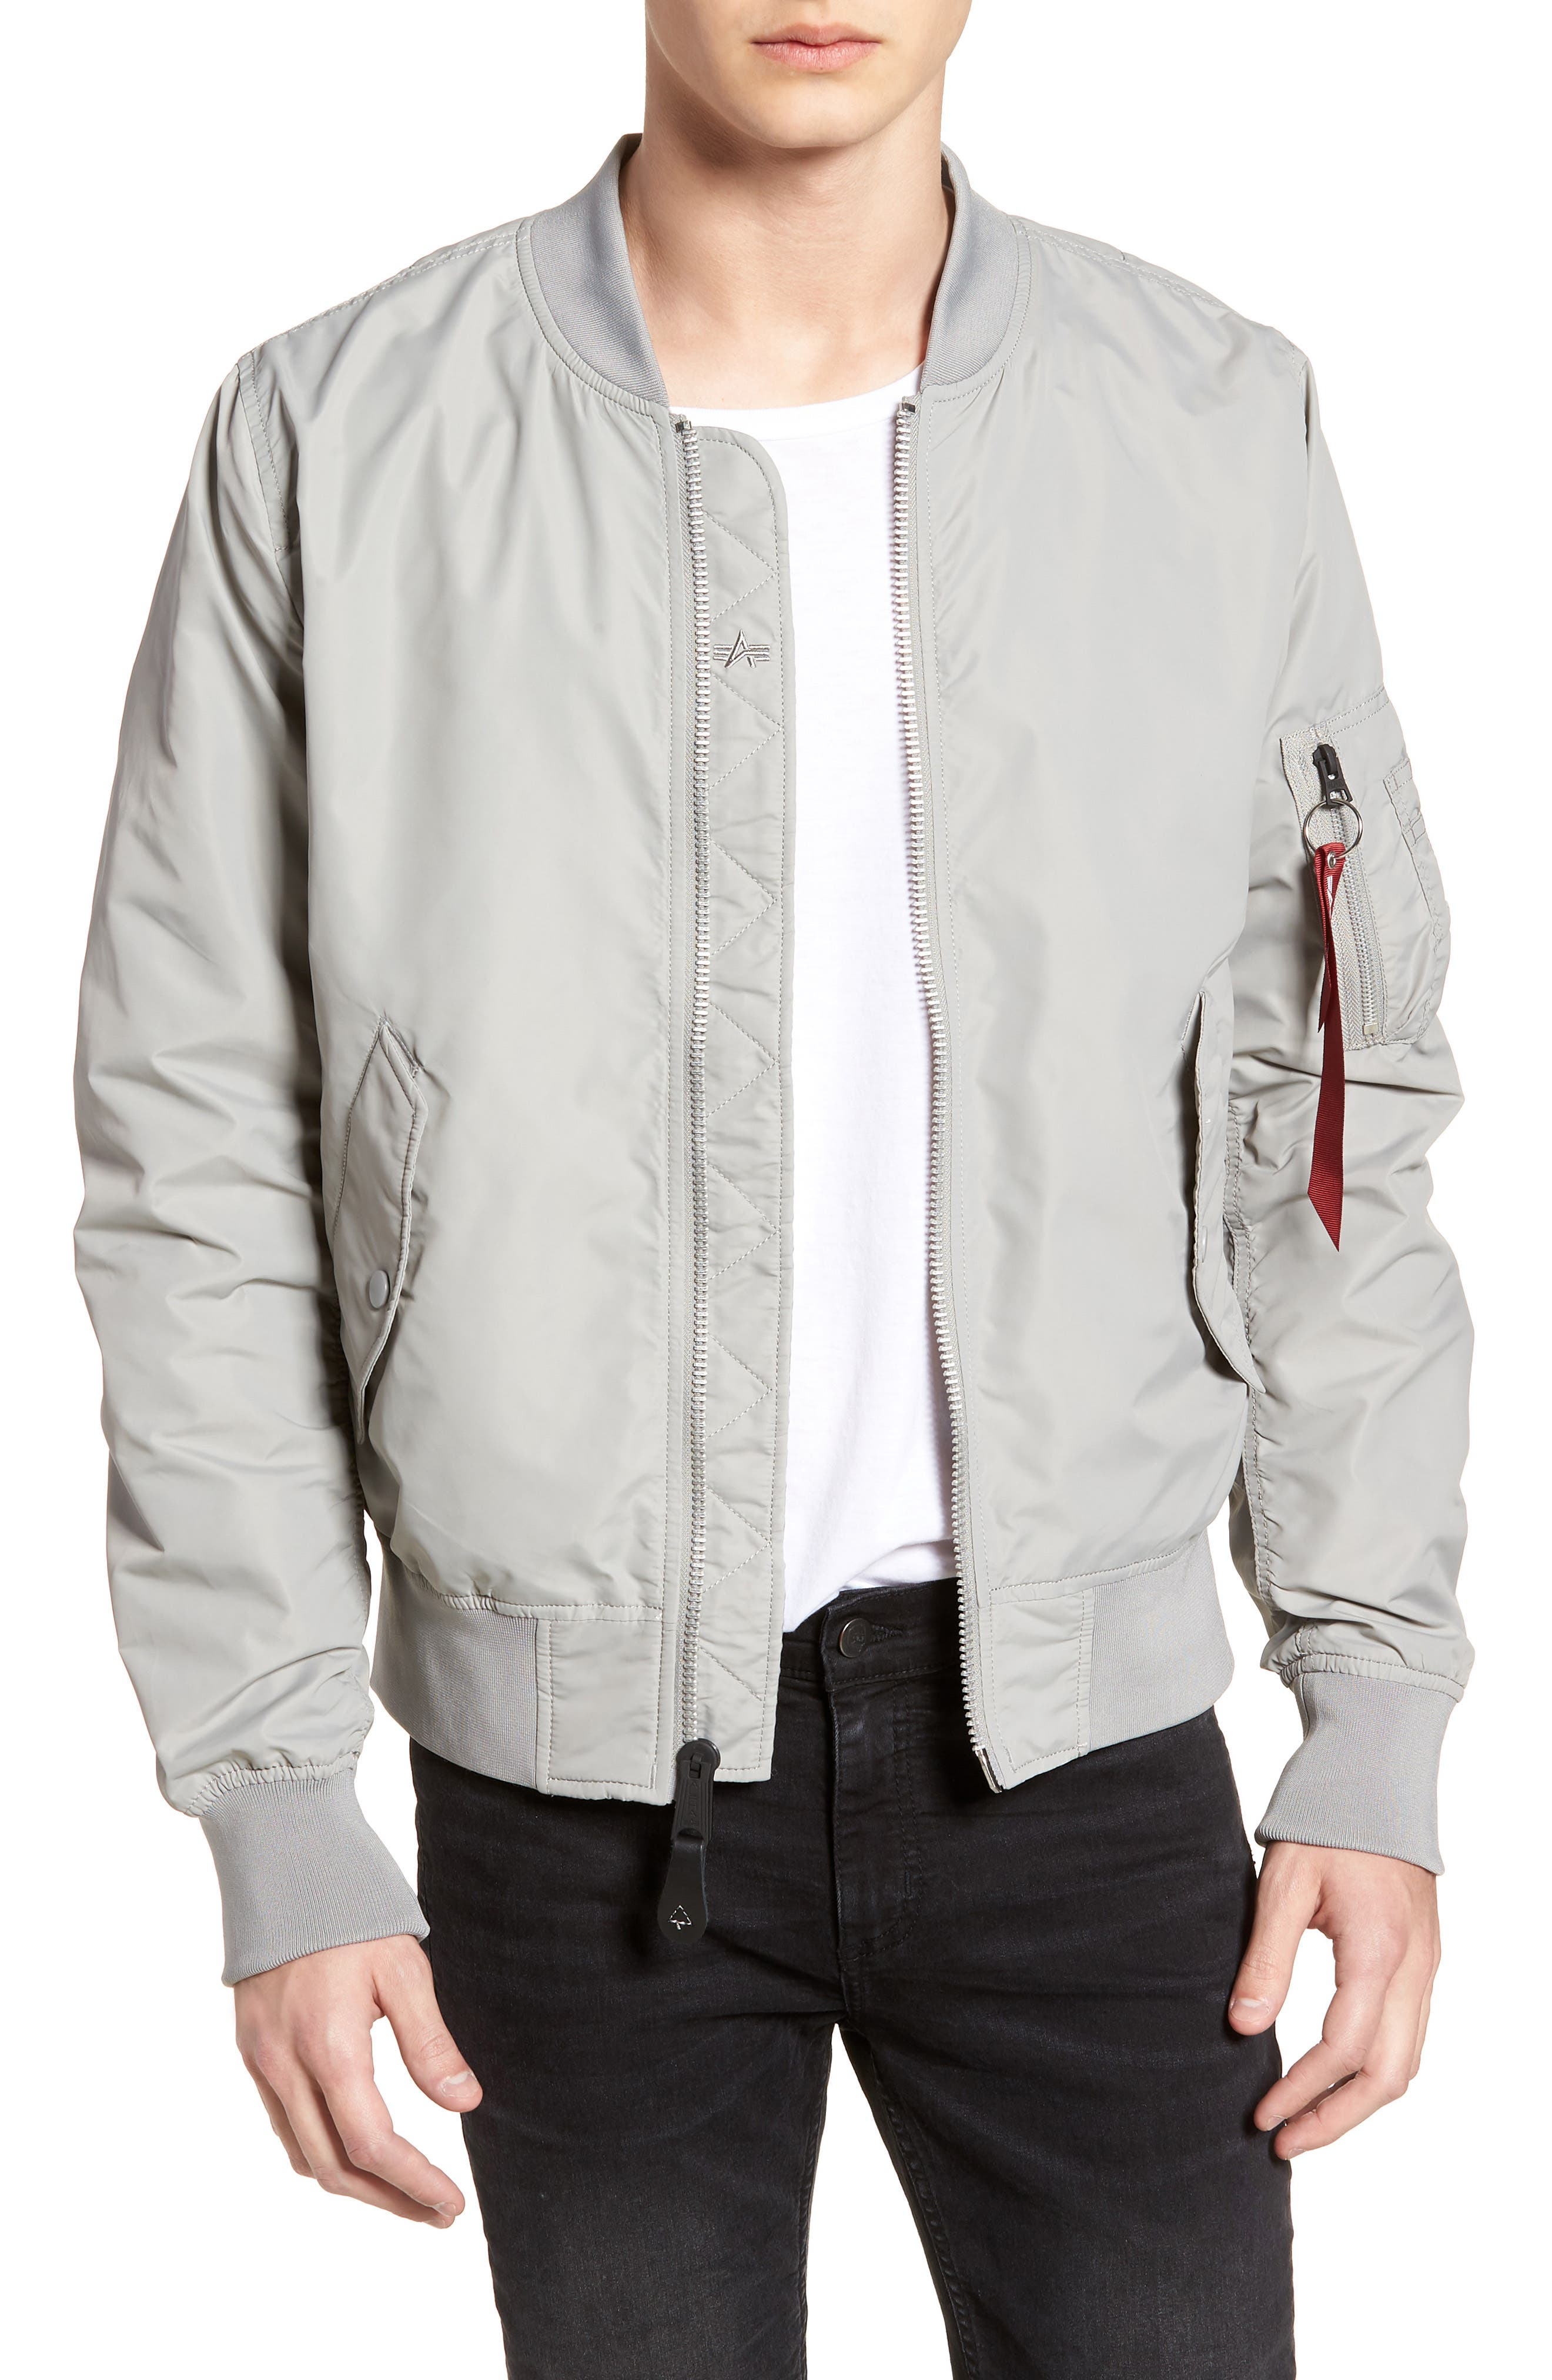 ALPHA INDUSTRIES 'L-2B - Dragonfly' Water Resistant Reversible Flight Jacket, Main, color, 020